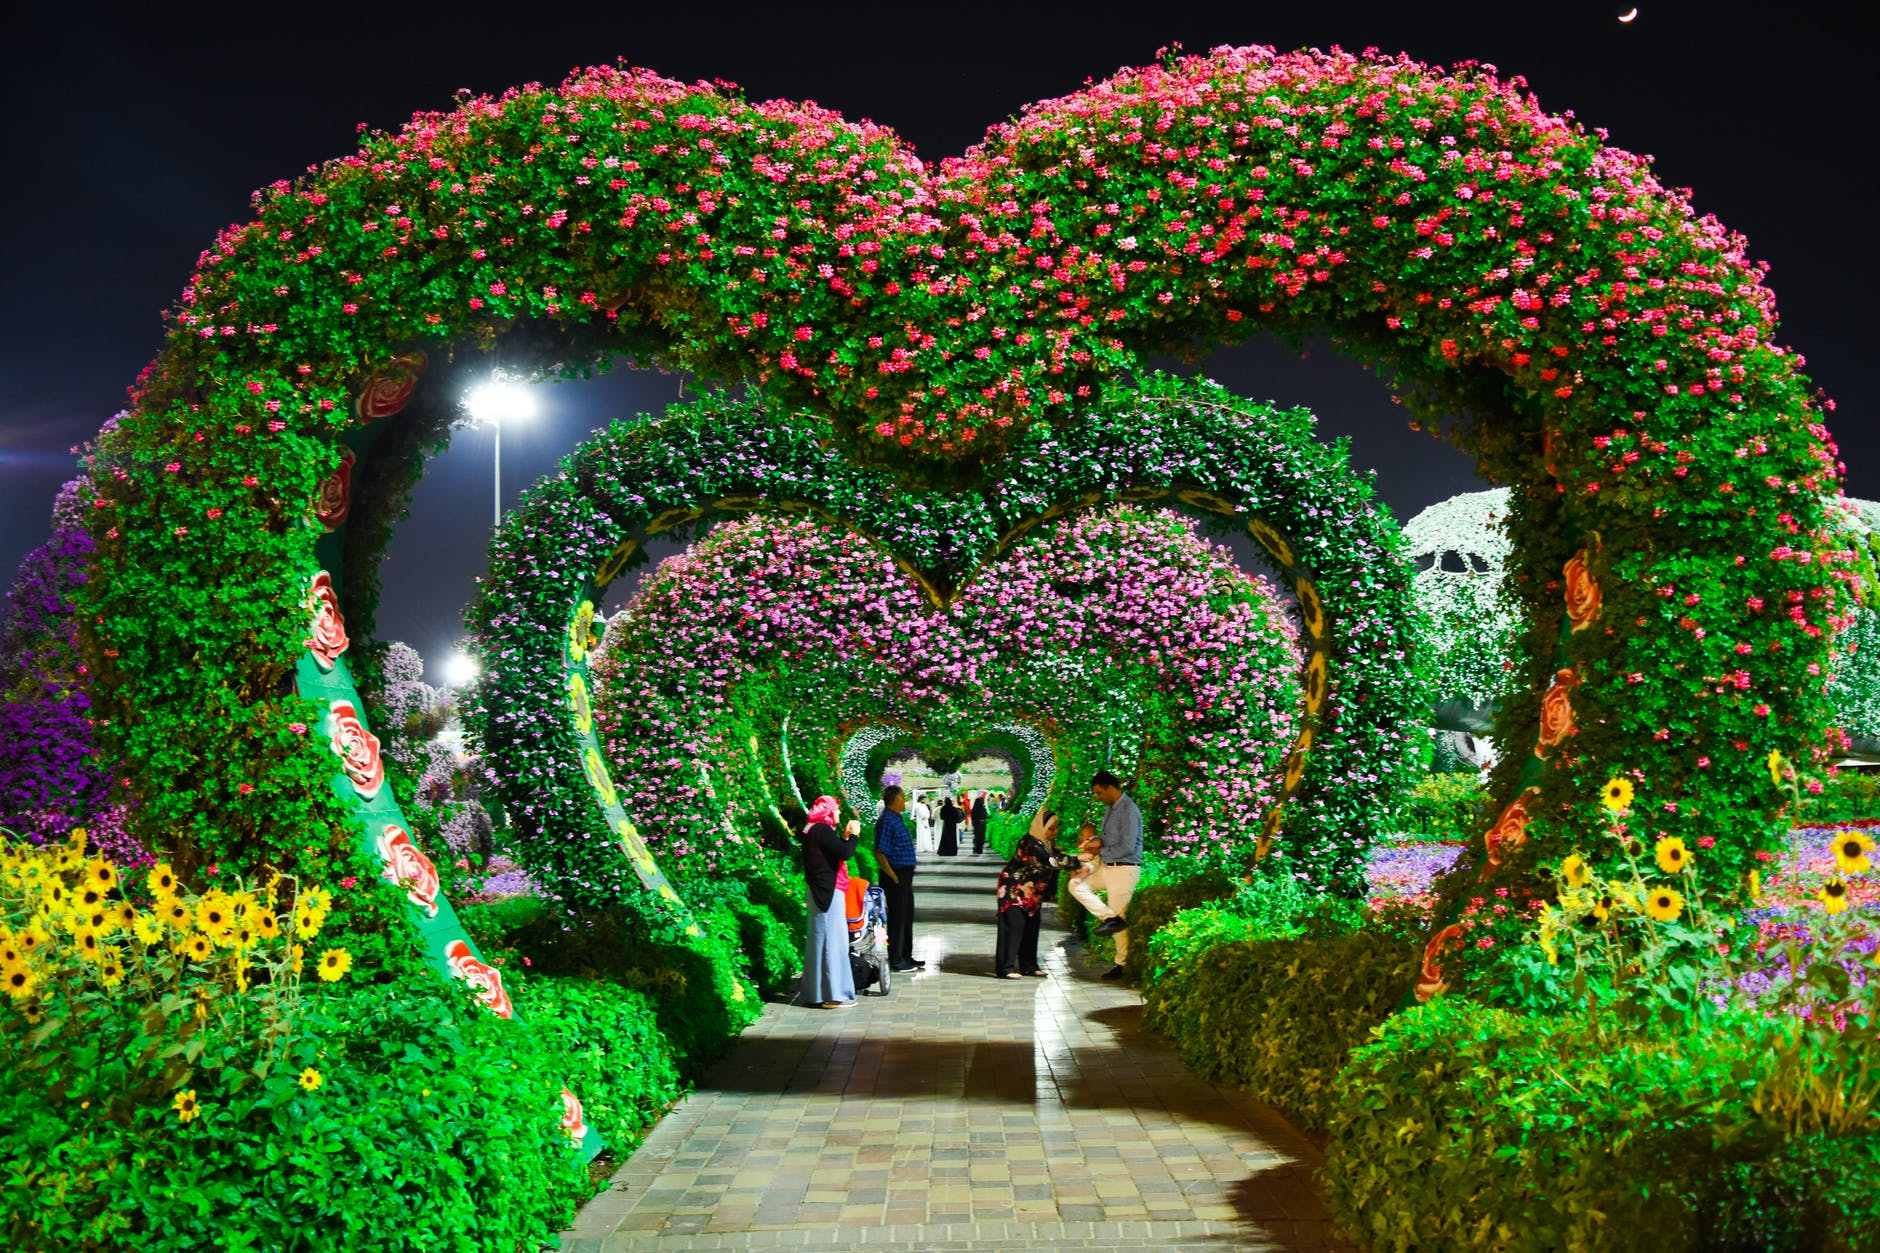 Garden with heart shape arc and full of flowers